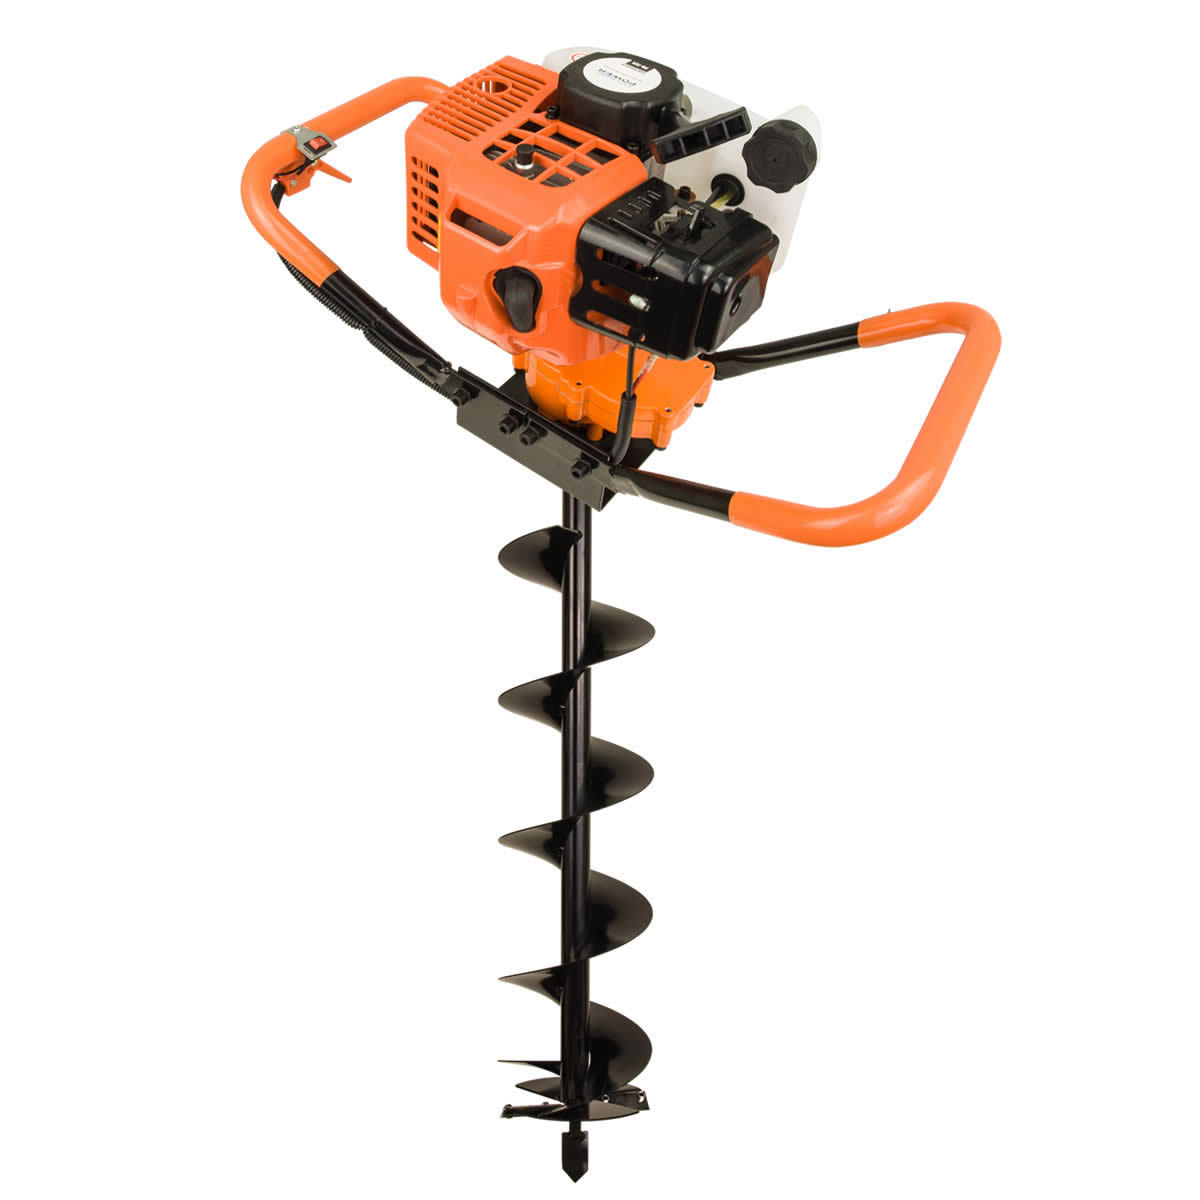 72cc post hole digger auger petrol drill bit fence earth borer by horti power ebay. Black Bedroom Furniture Sets. Home Design Ideas